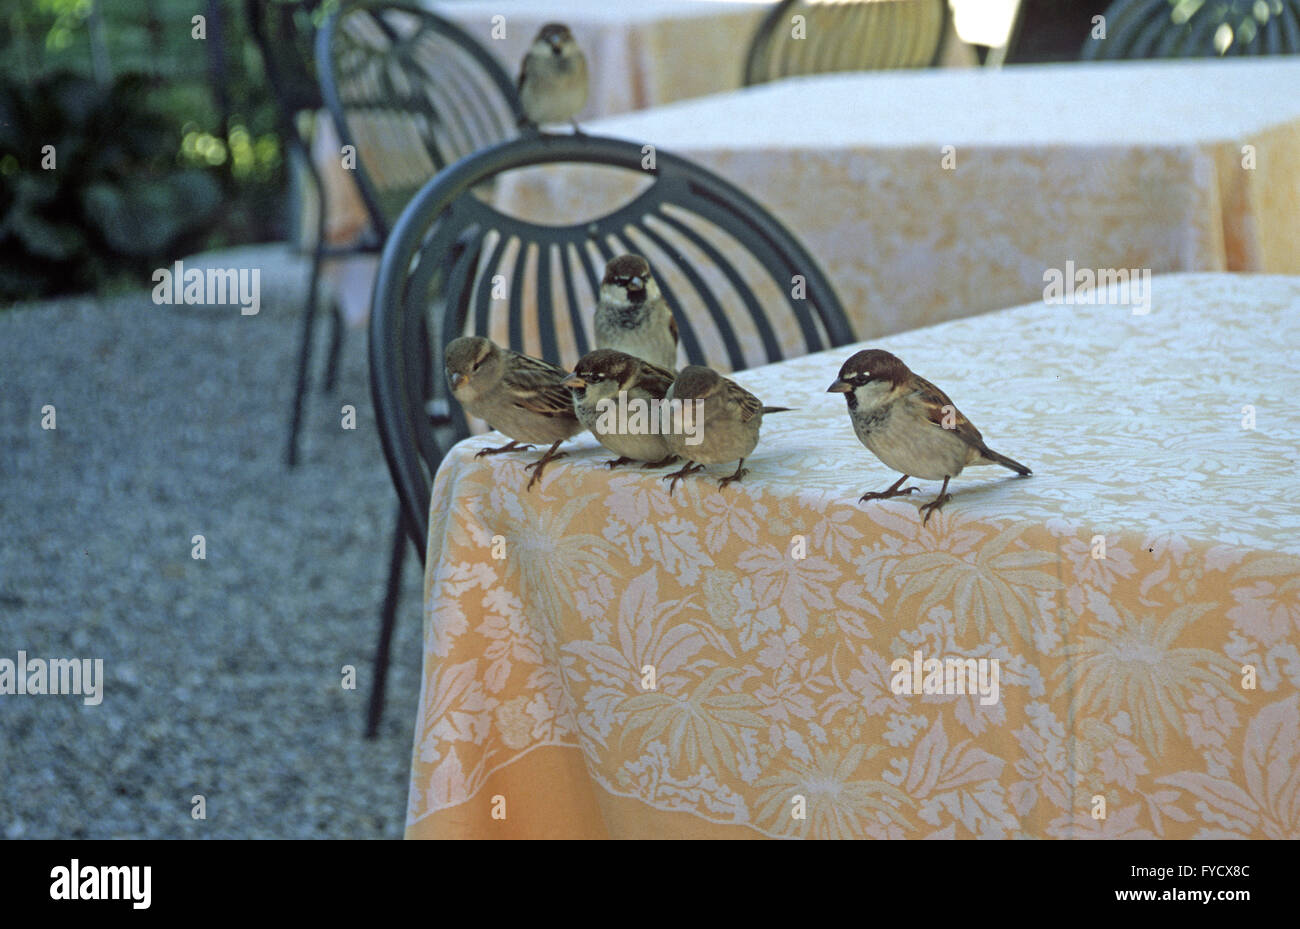 Sparrows on the table - Stock Image